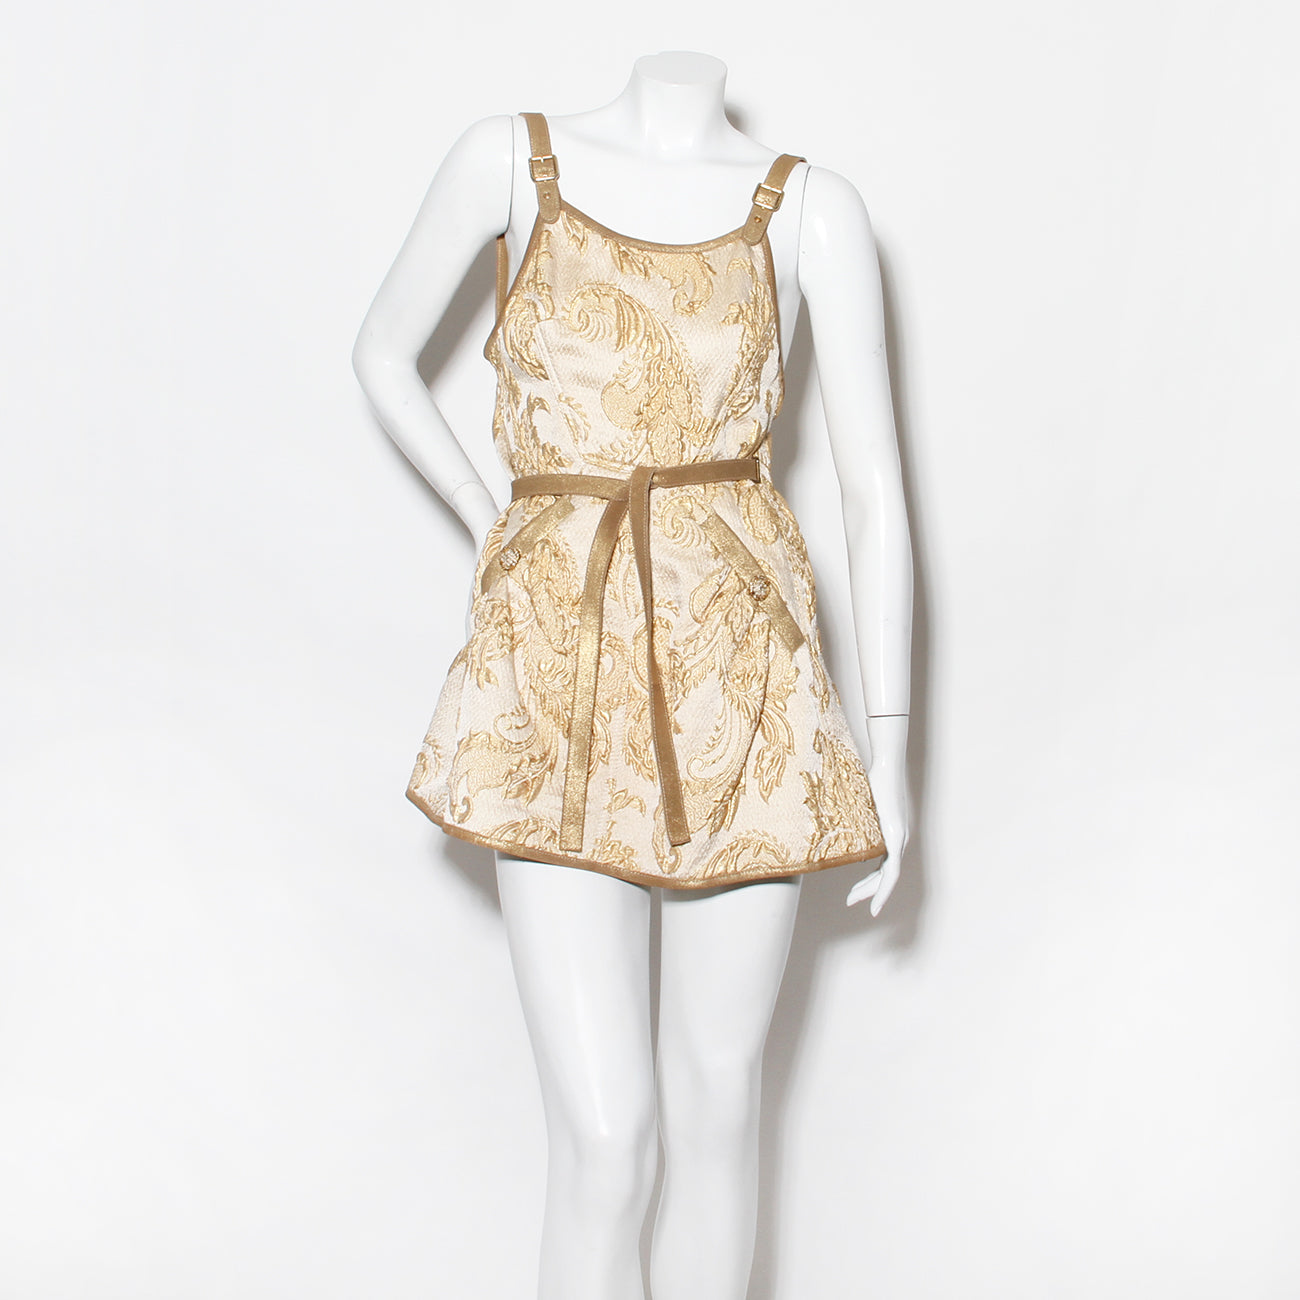 Chanel Brocade Mini Dress